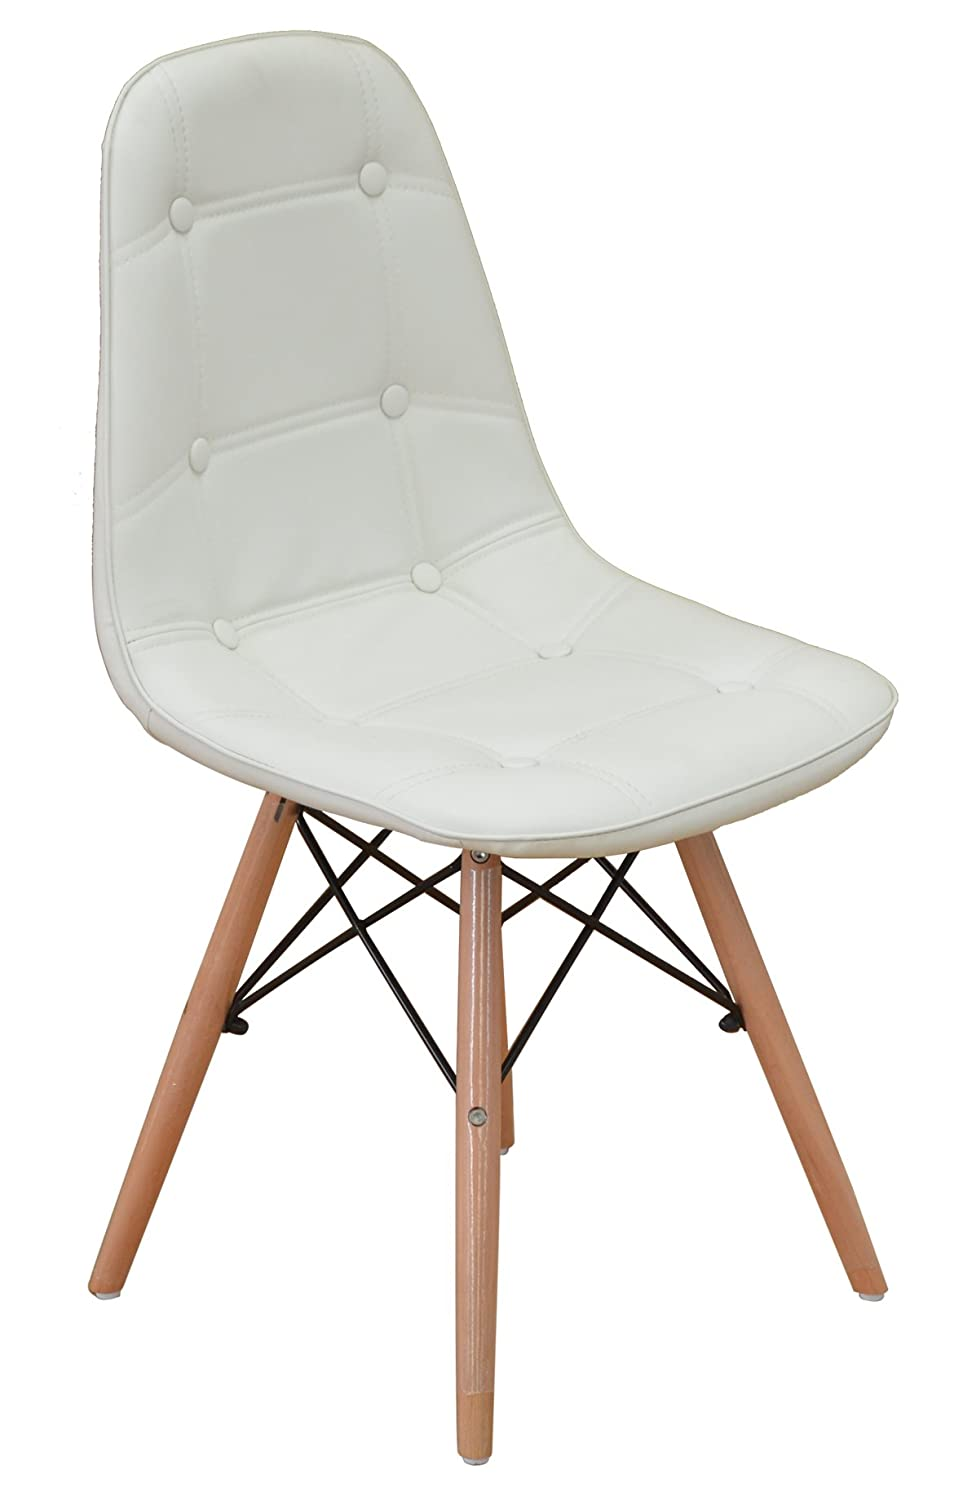 Eames stuhl replika office aluminium group chair ea for Eames stuhl dsw reproduktion